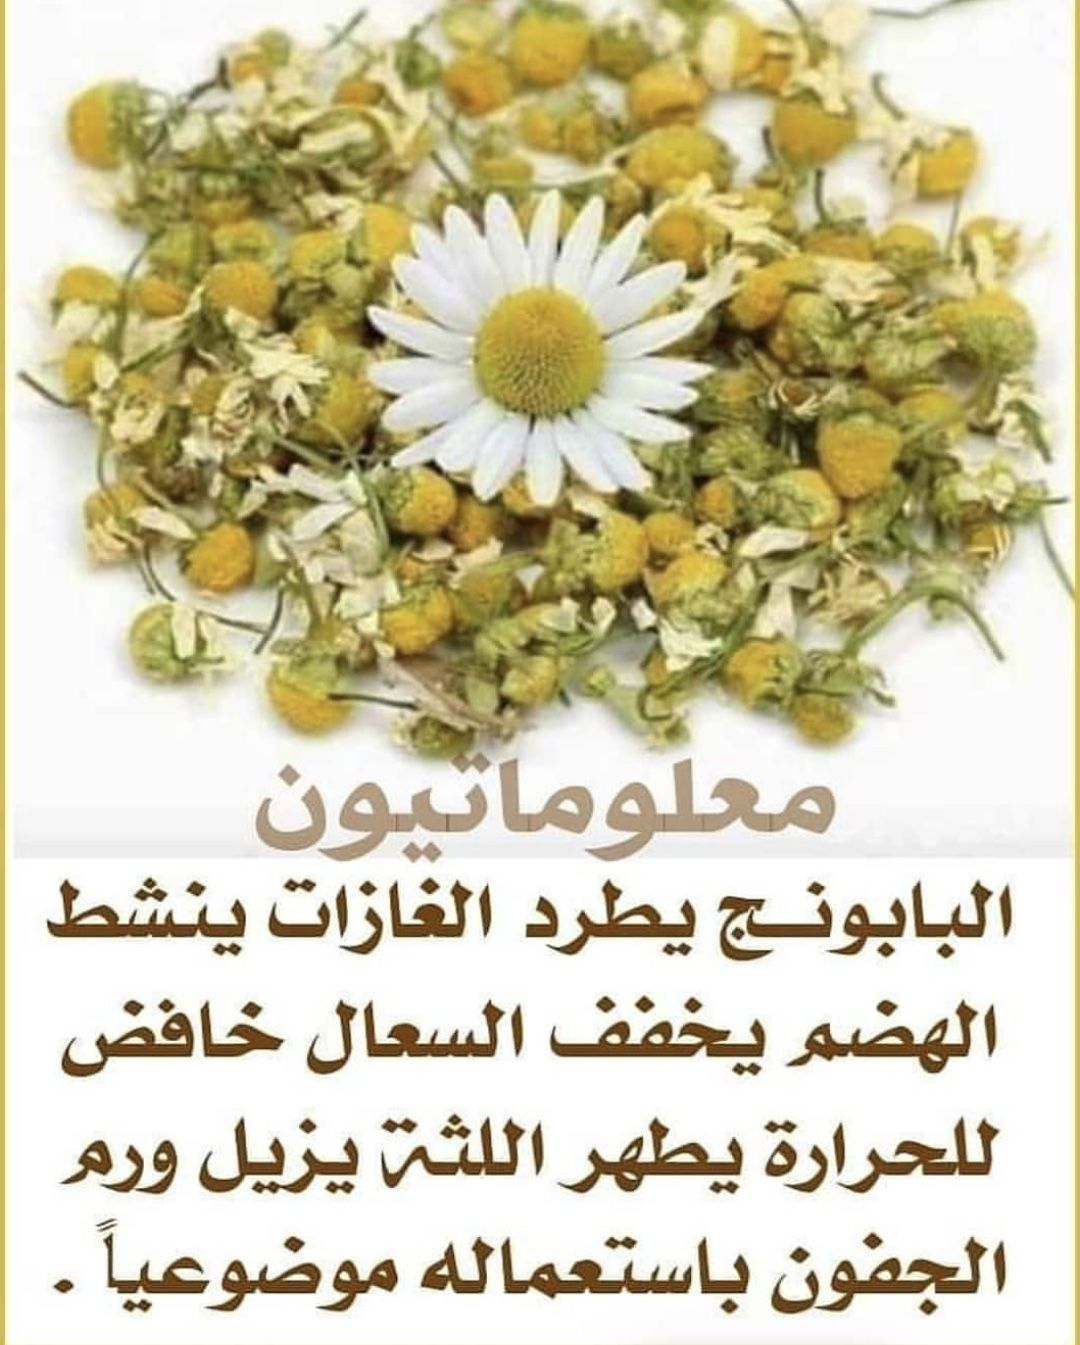 Pin By اوراق الخريف On الصحة والتغذية In 2020 Health And Wellbeing Health Food